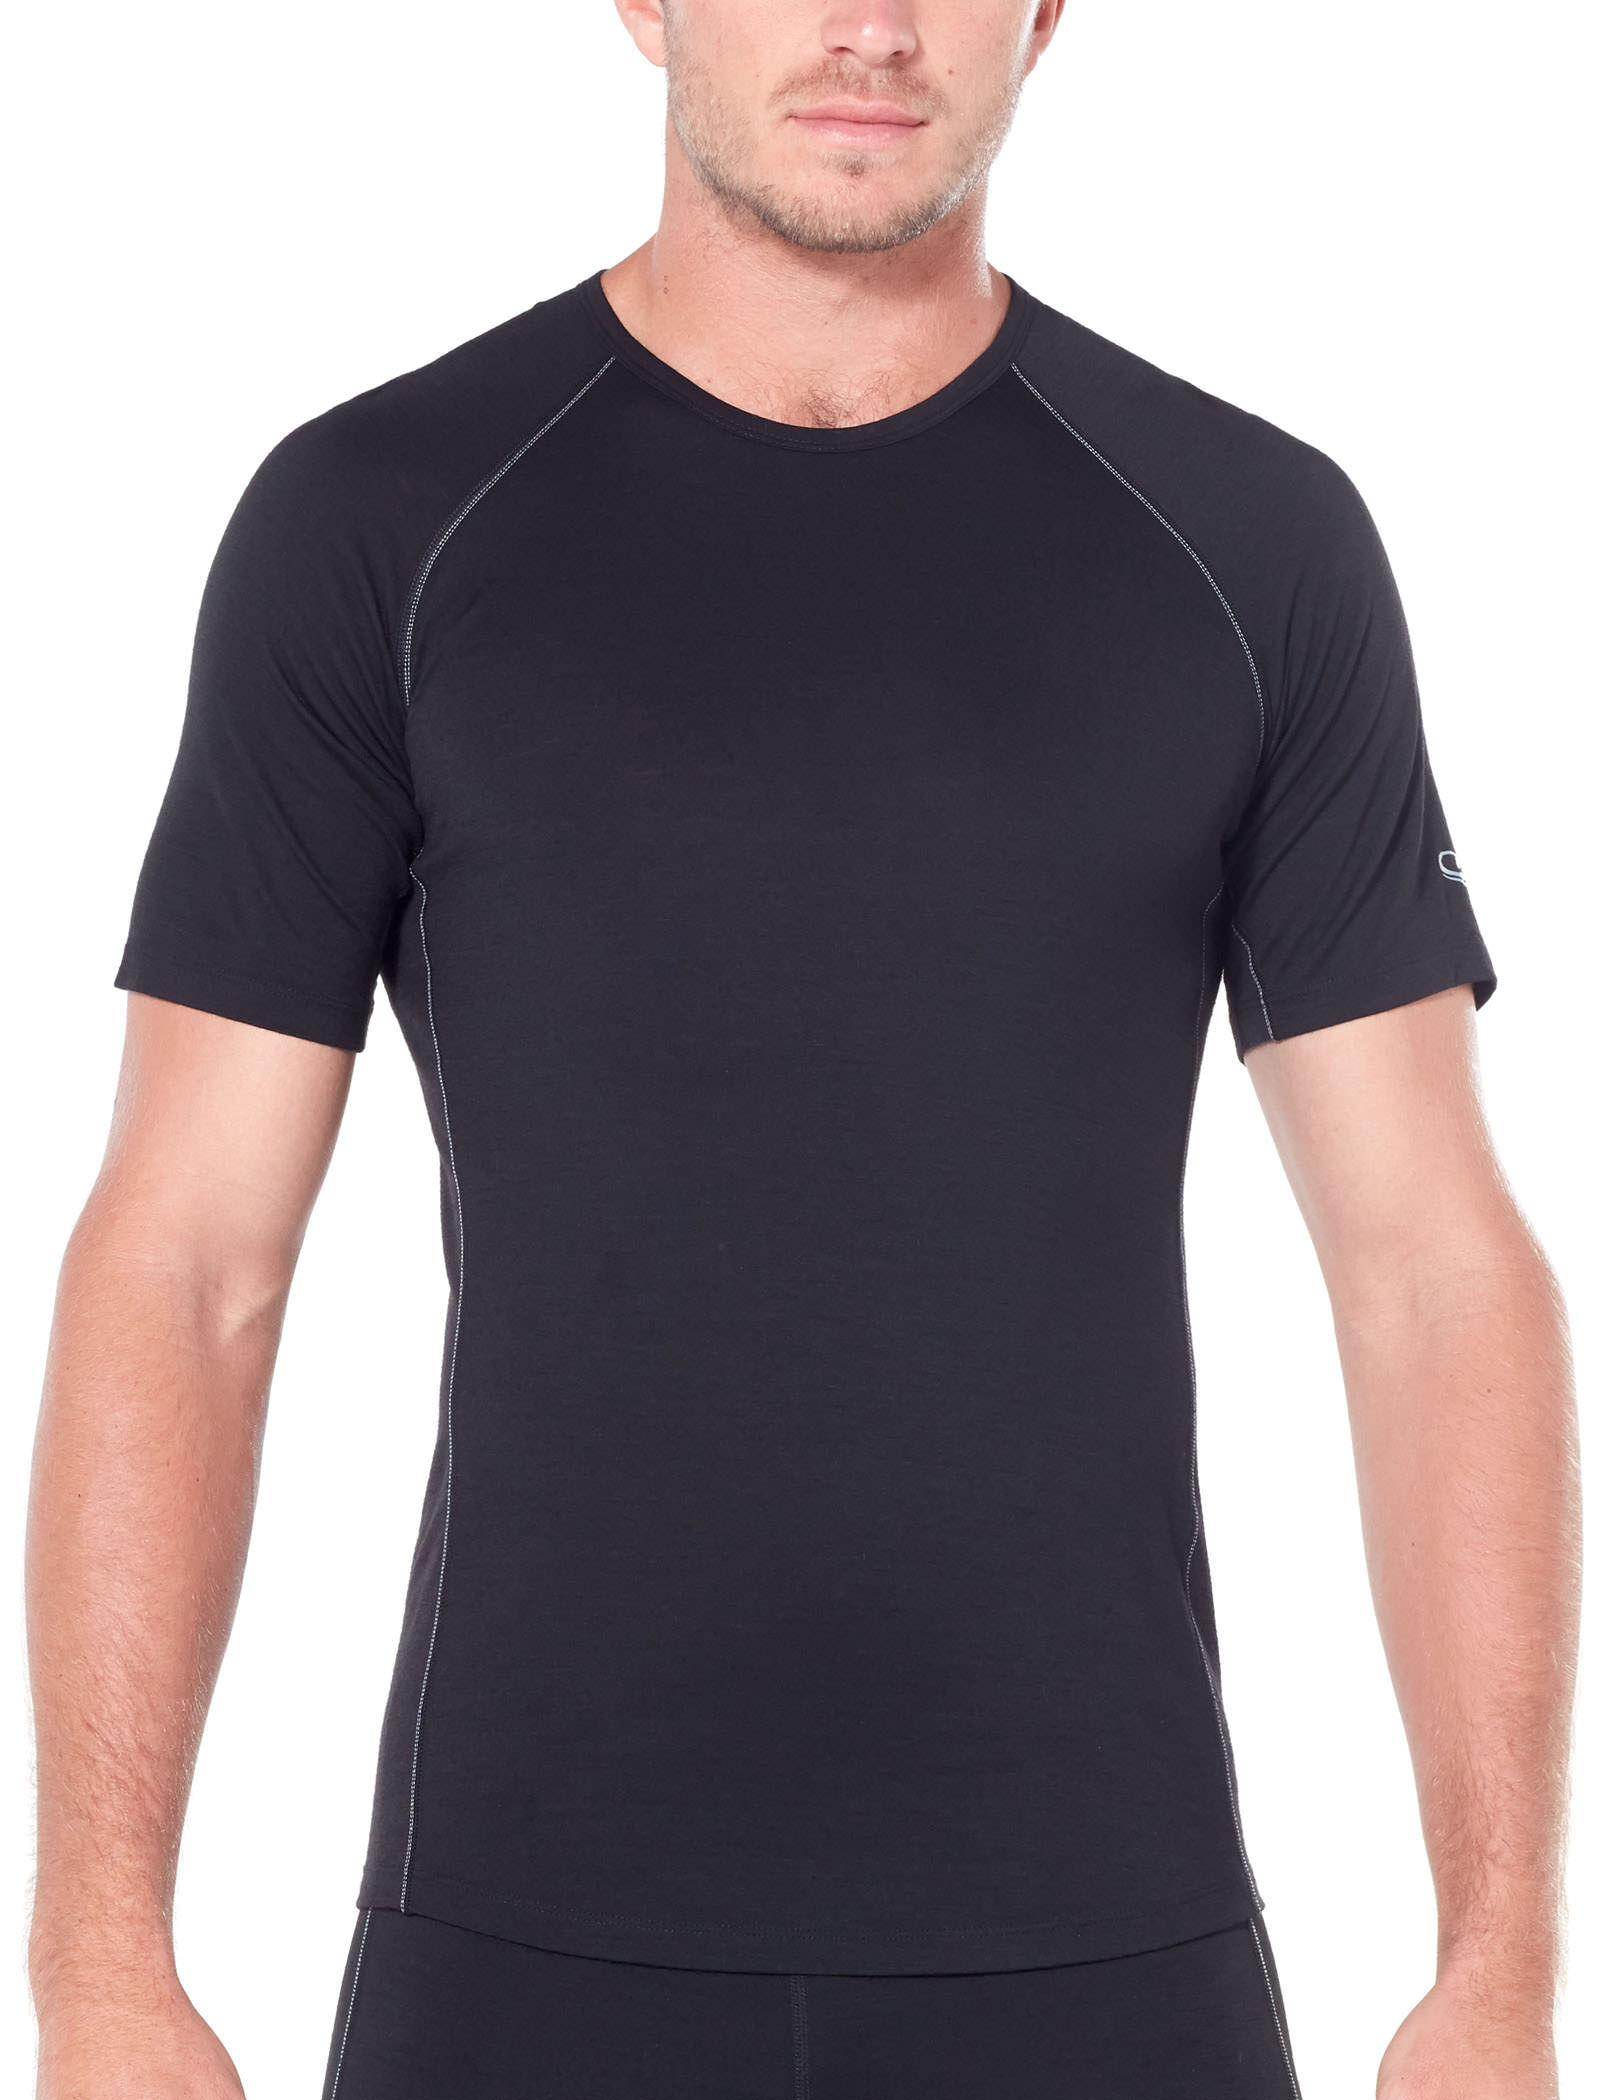 Haut Thermique Maan Store Homme Large